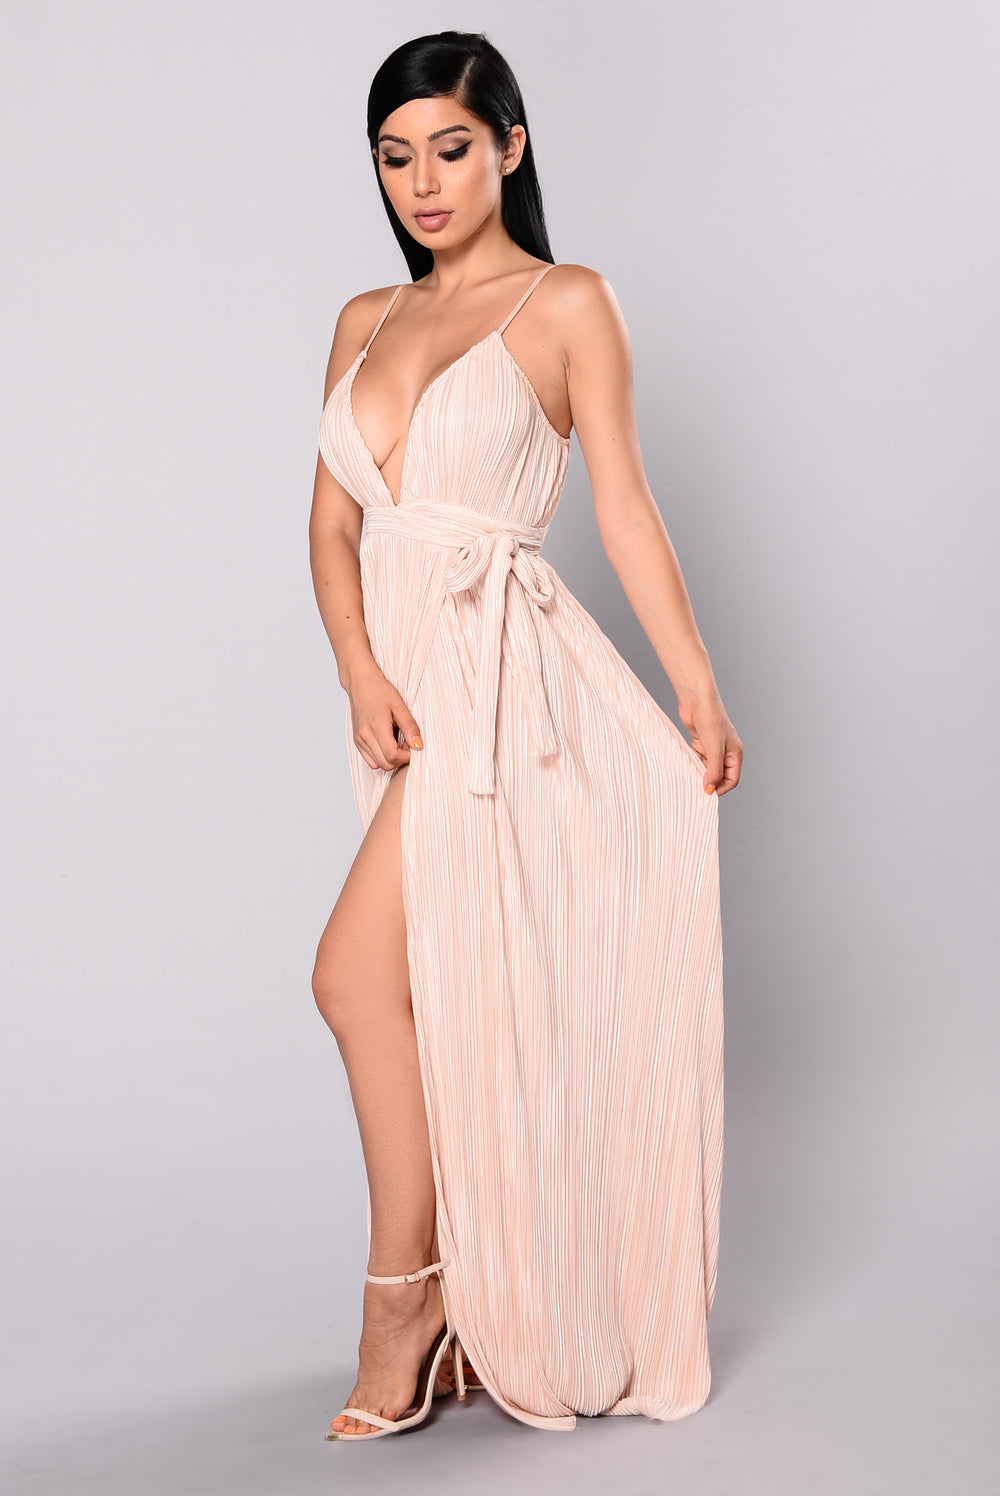 Feeling Fancy Maxi Dress - Champagne